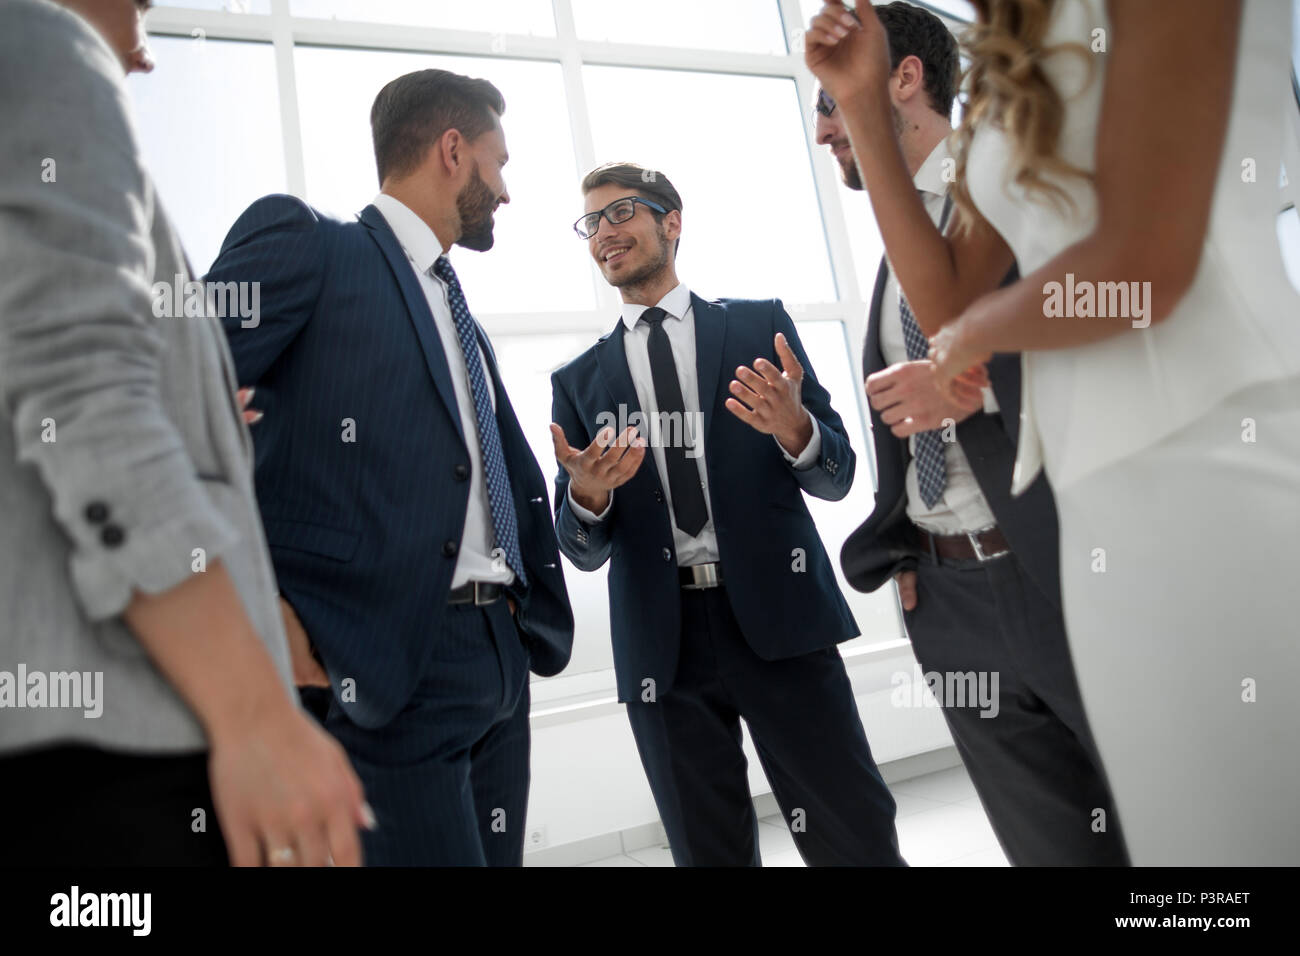 working group of business people discussing common interests - Stock Image